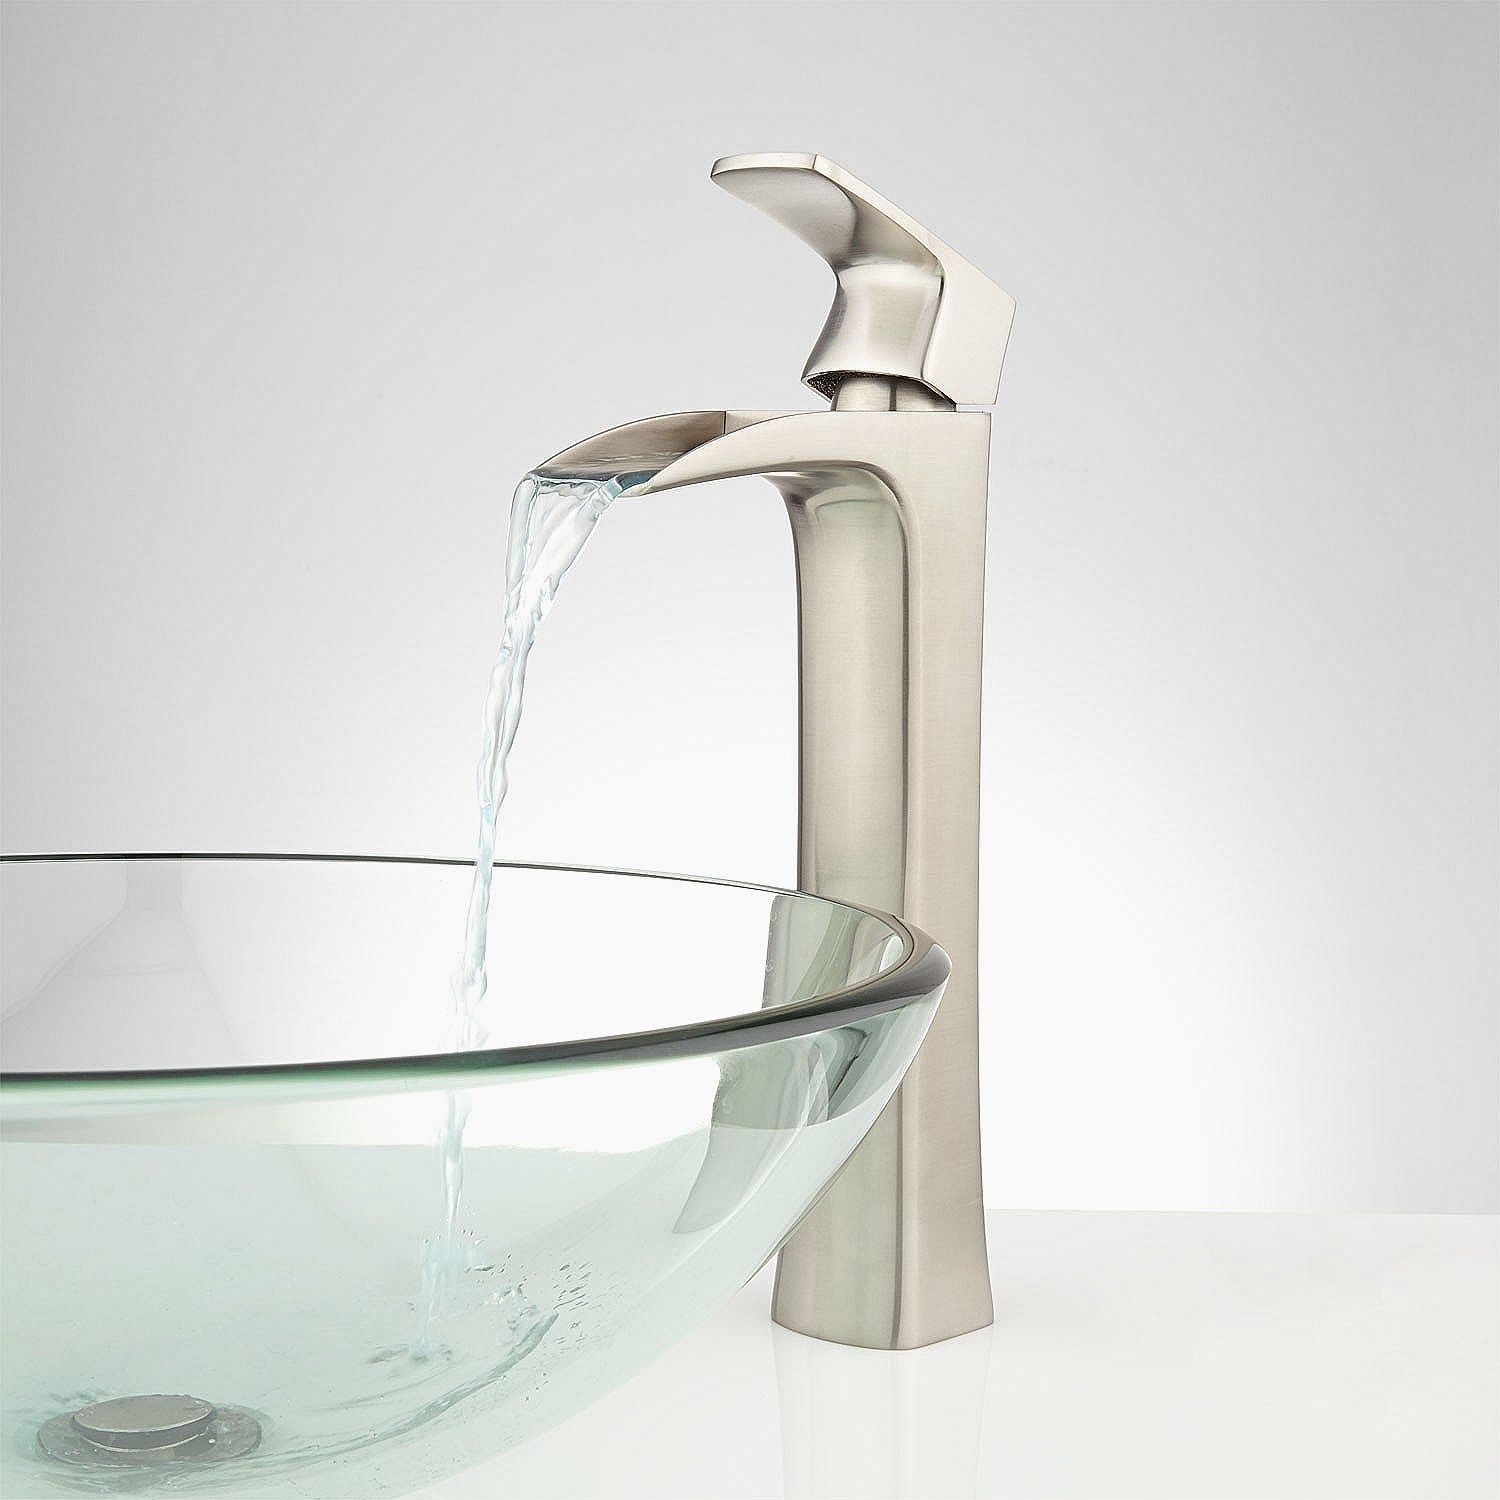 You Searched For Faucet Sink Faucets Vessel Faucets Vessel